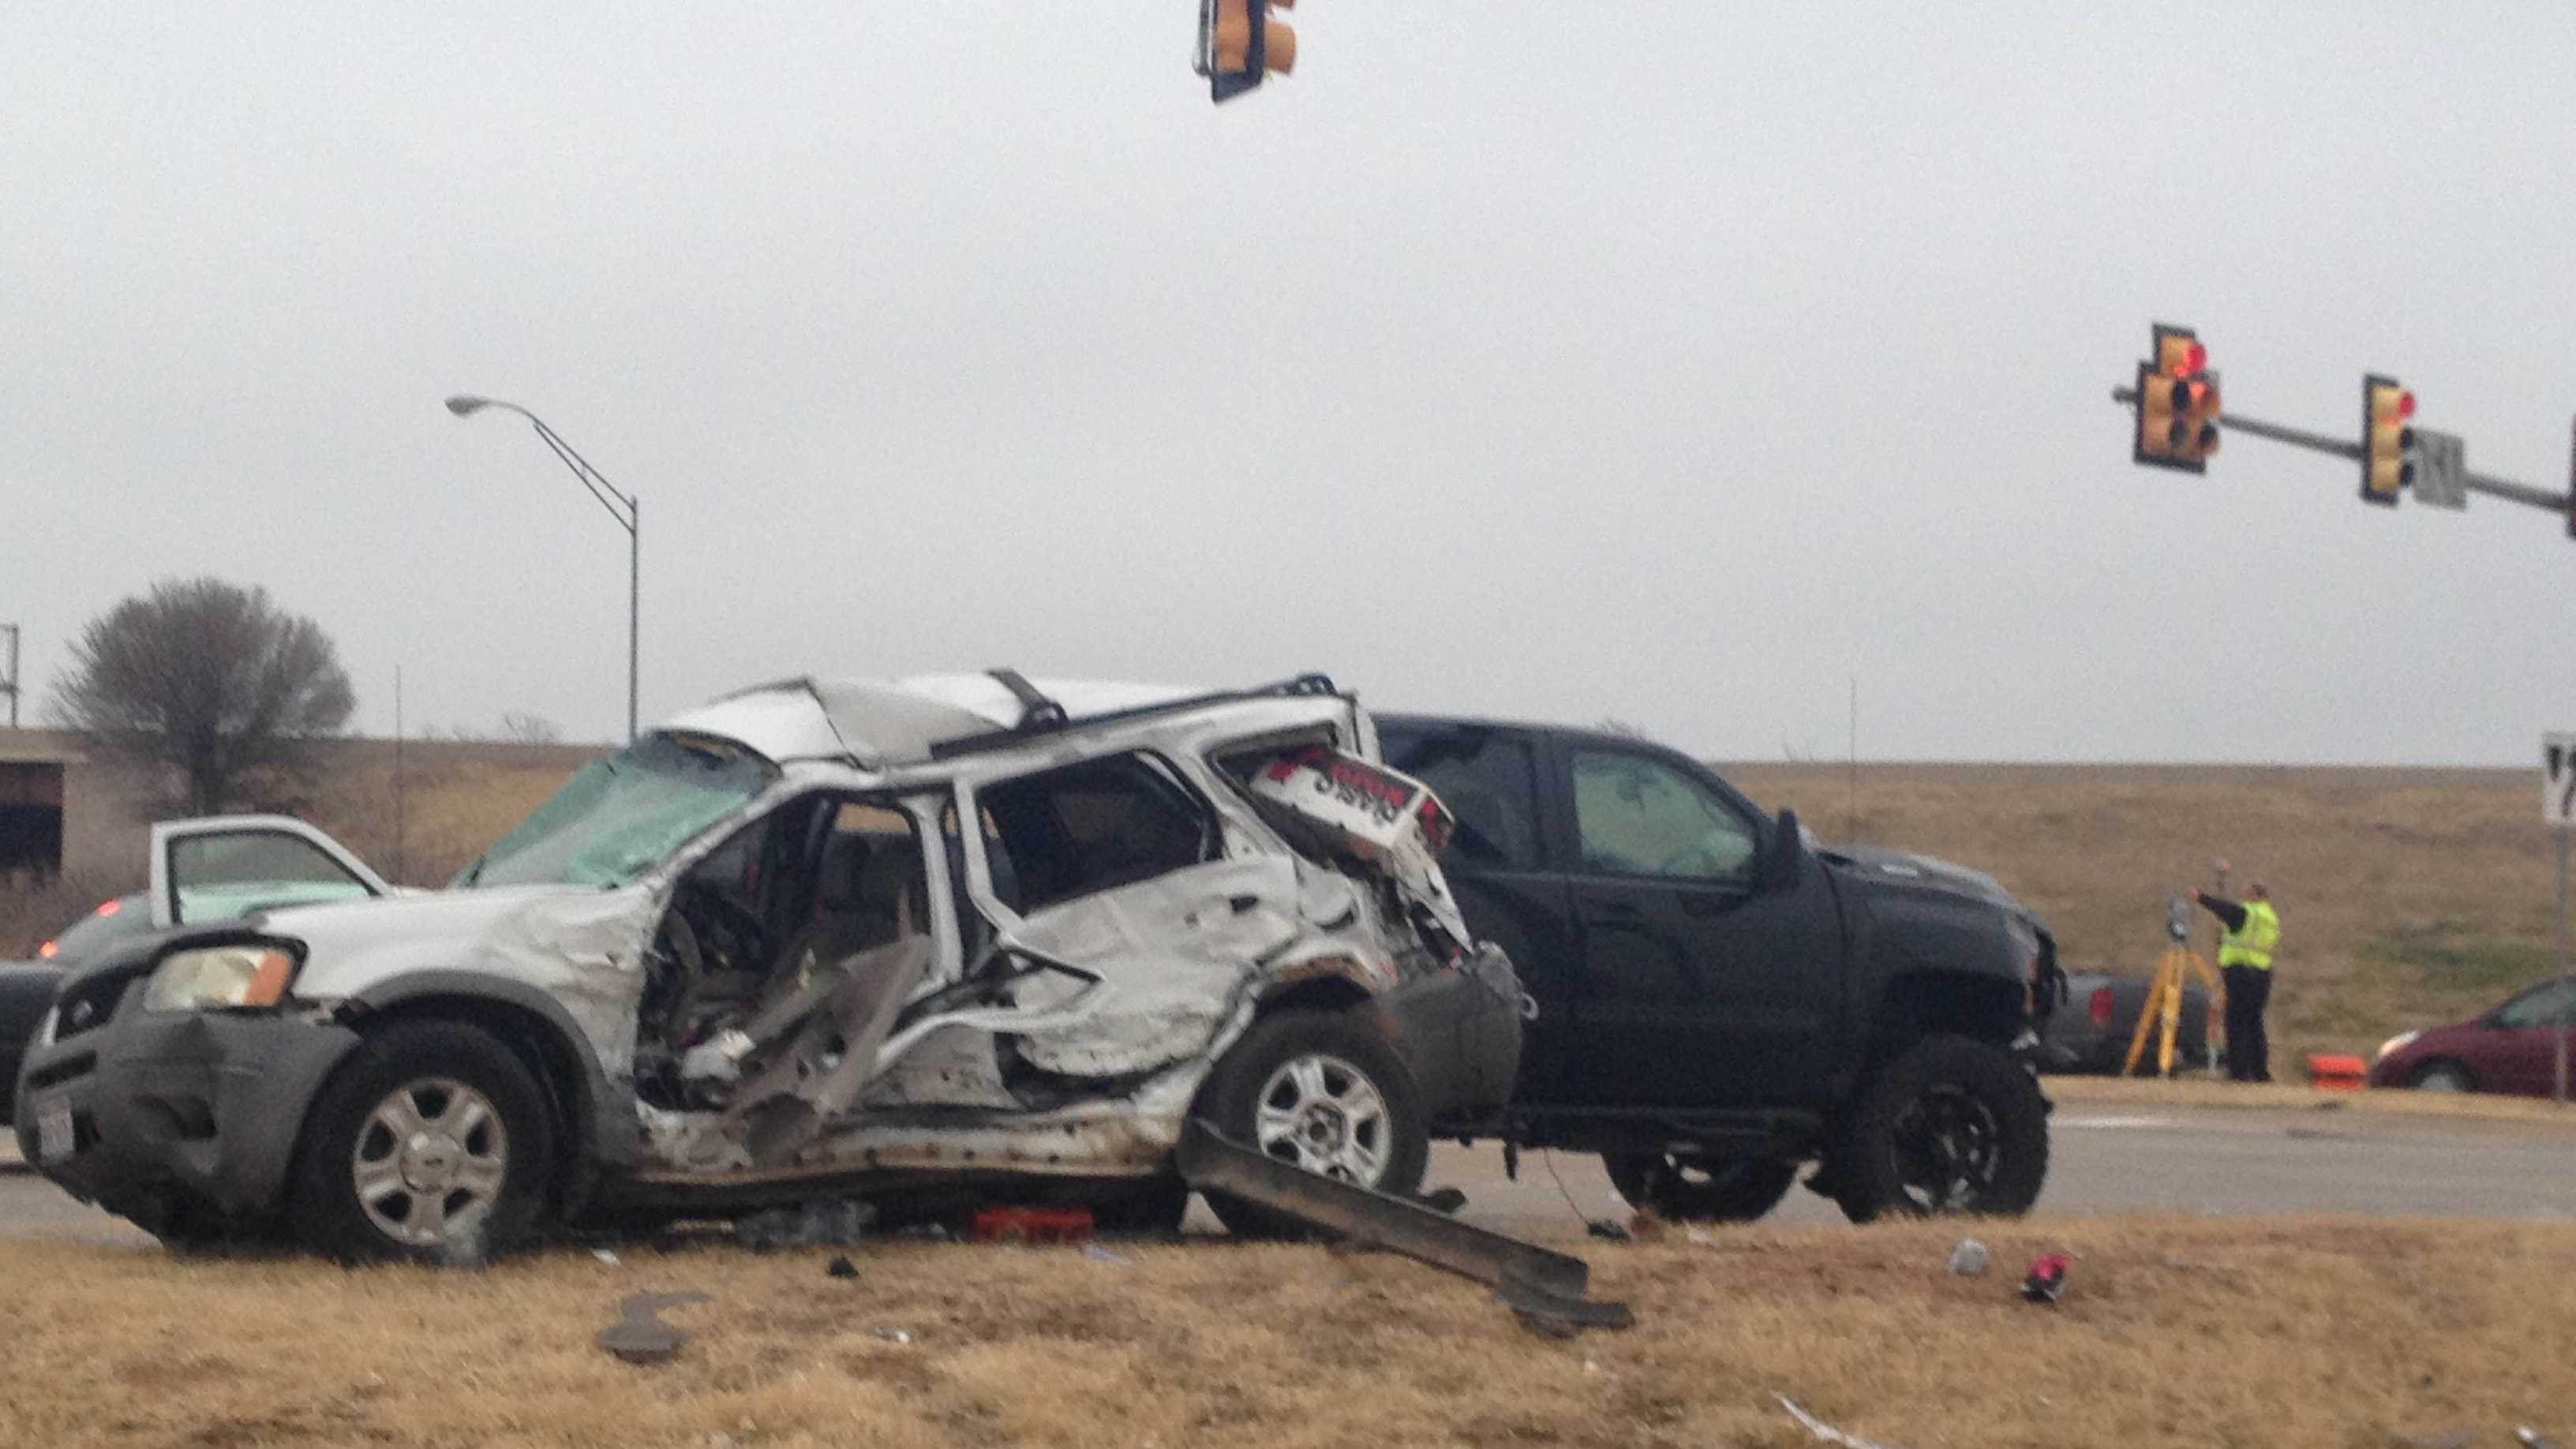 A traffic collision on Saturday left one person dead.